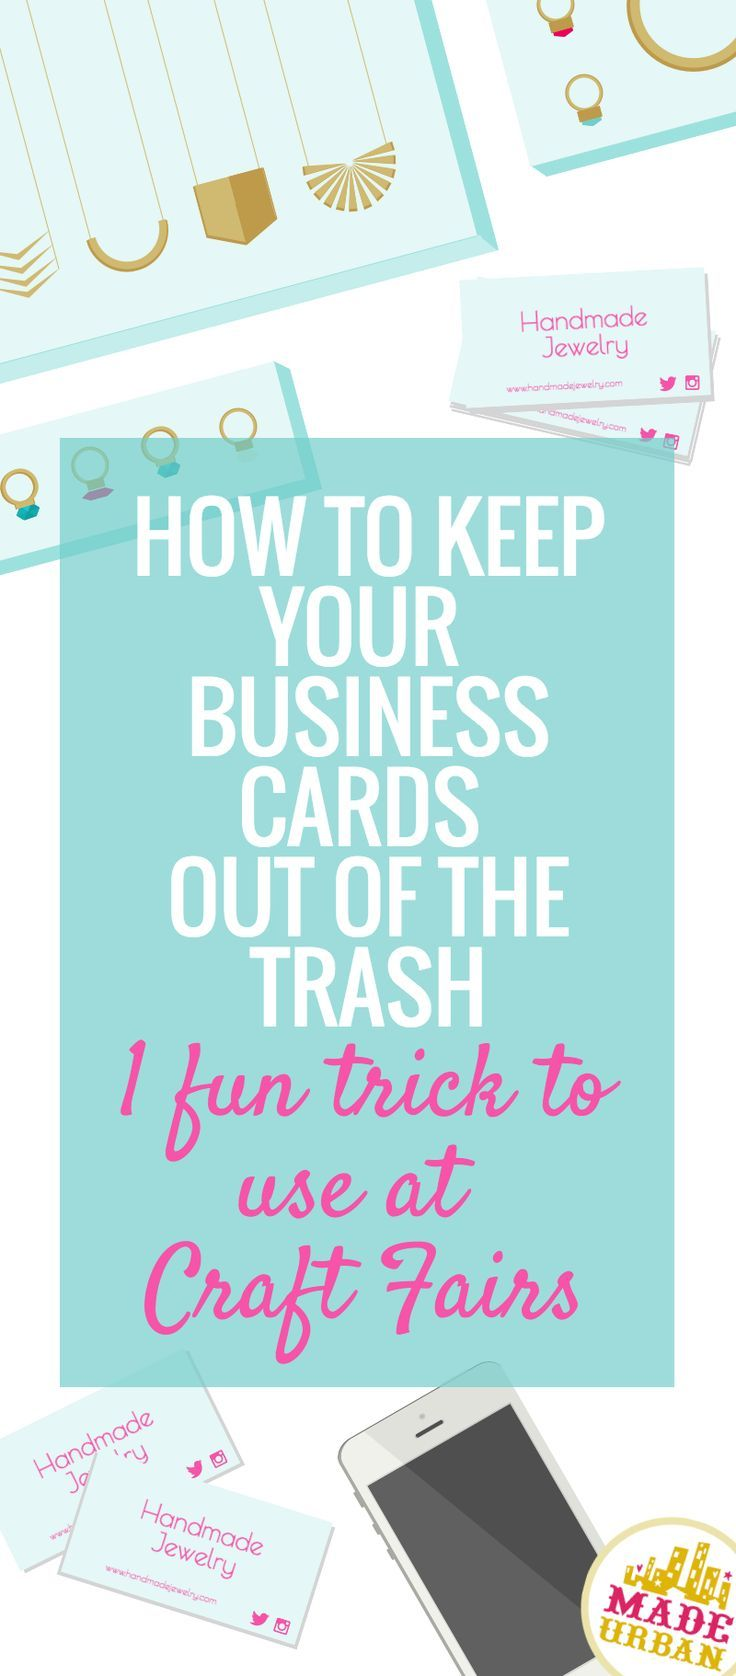 How to keep your business cards out of the trash craft fairs how to keep your business cards out of the trash colourmoves